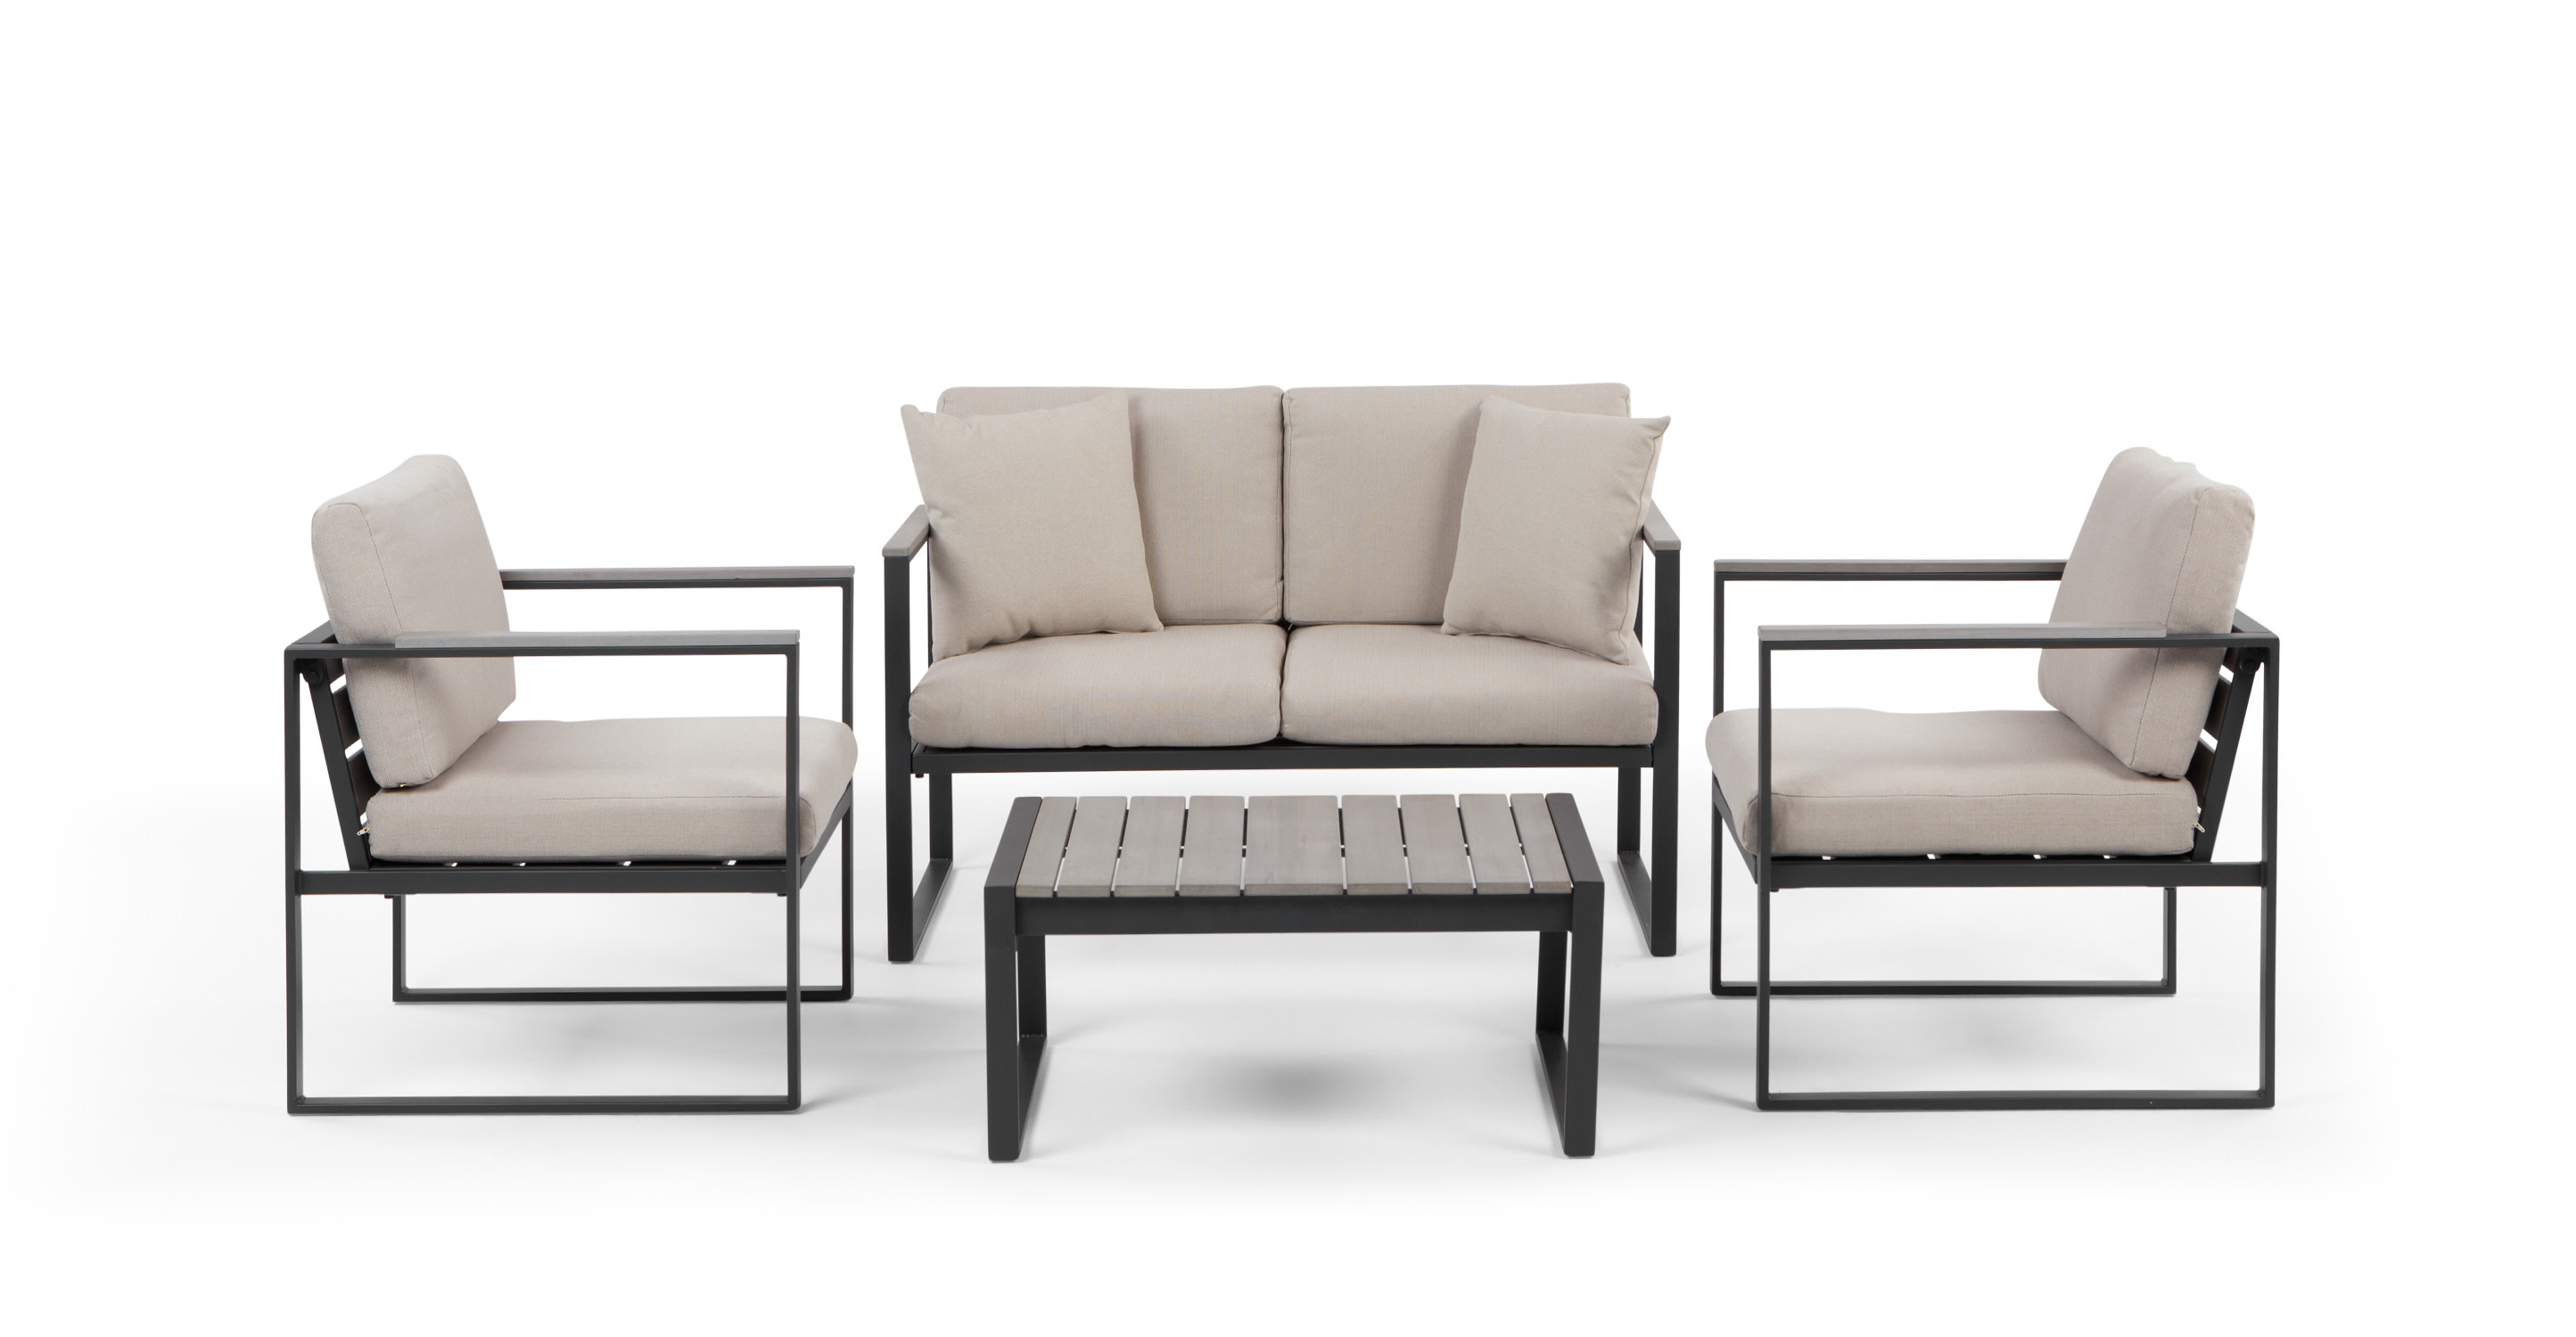 Catania Outdoor Lounge Set Polywood Discount Furniture Store